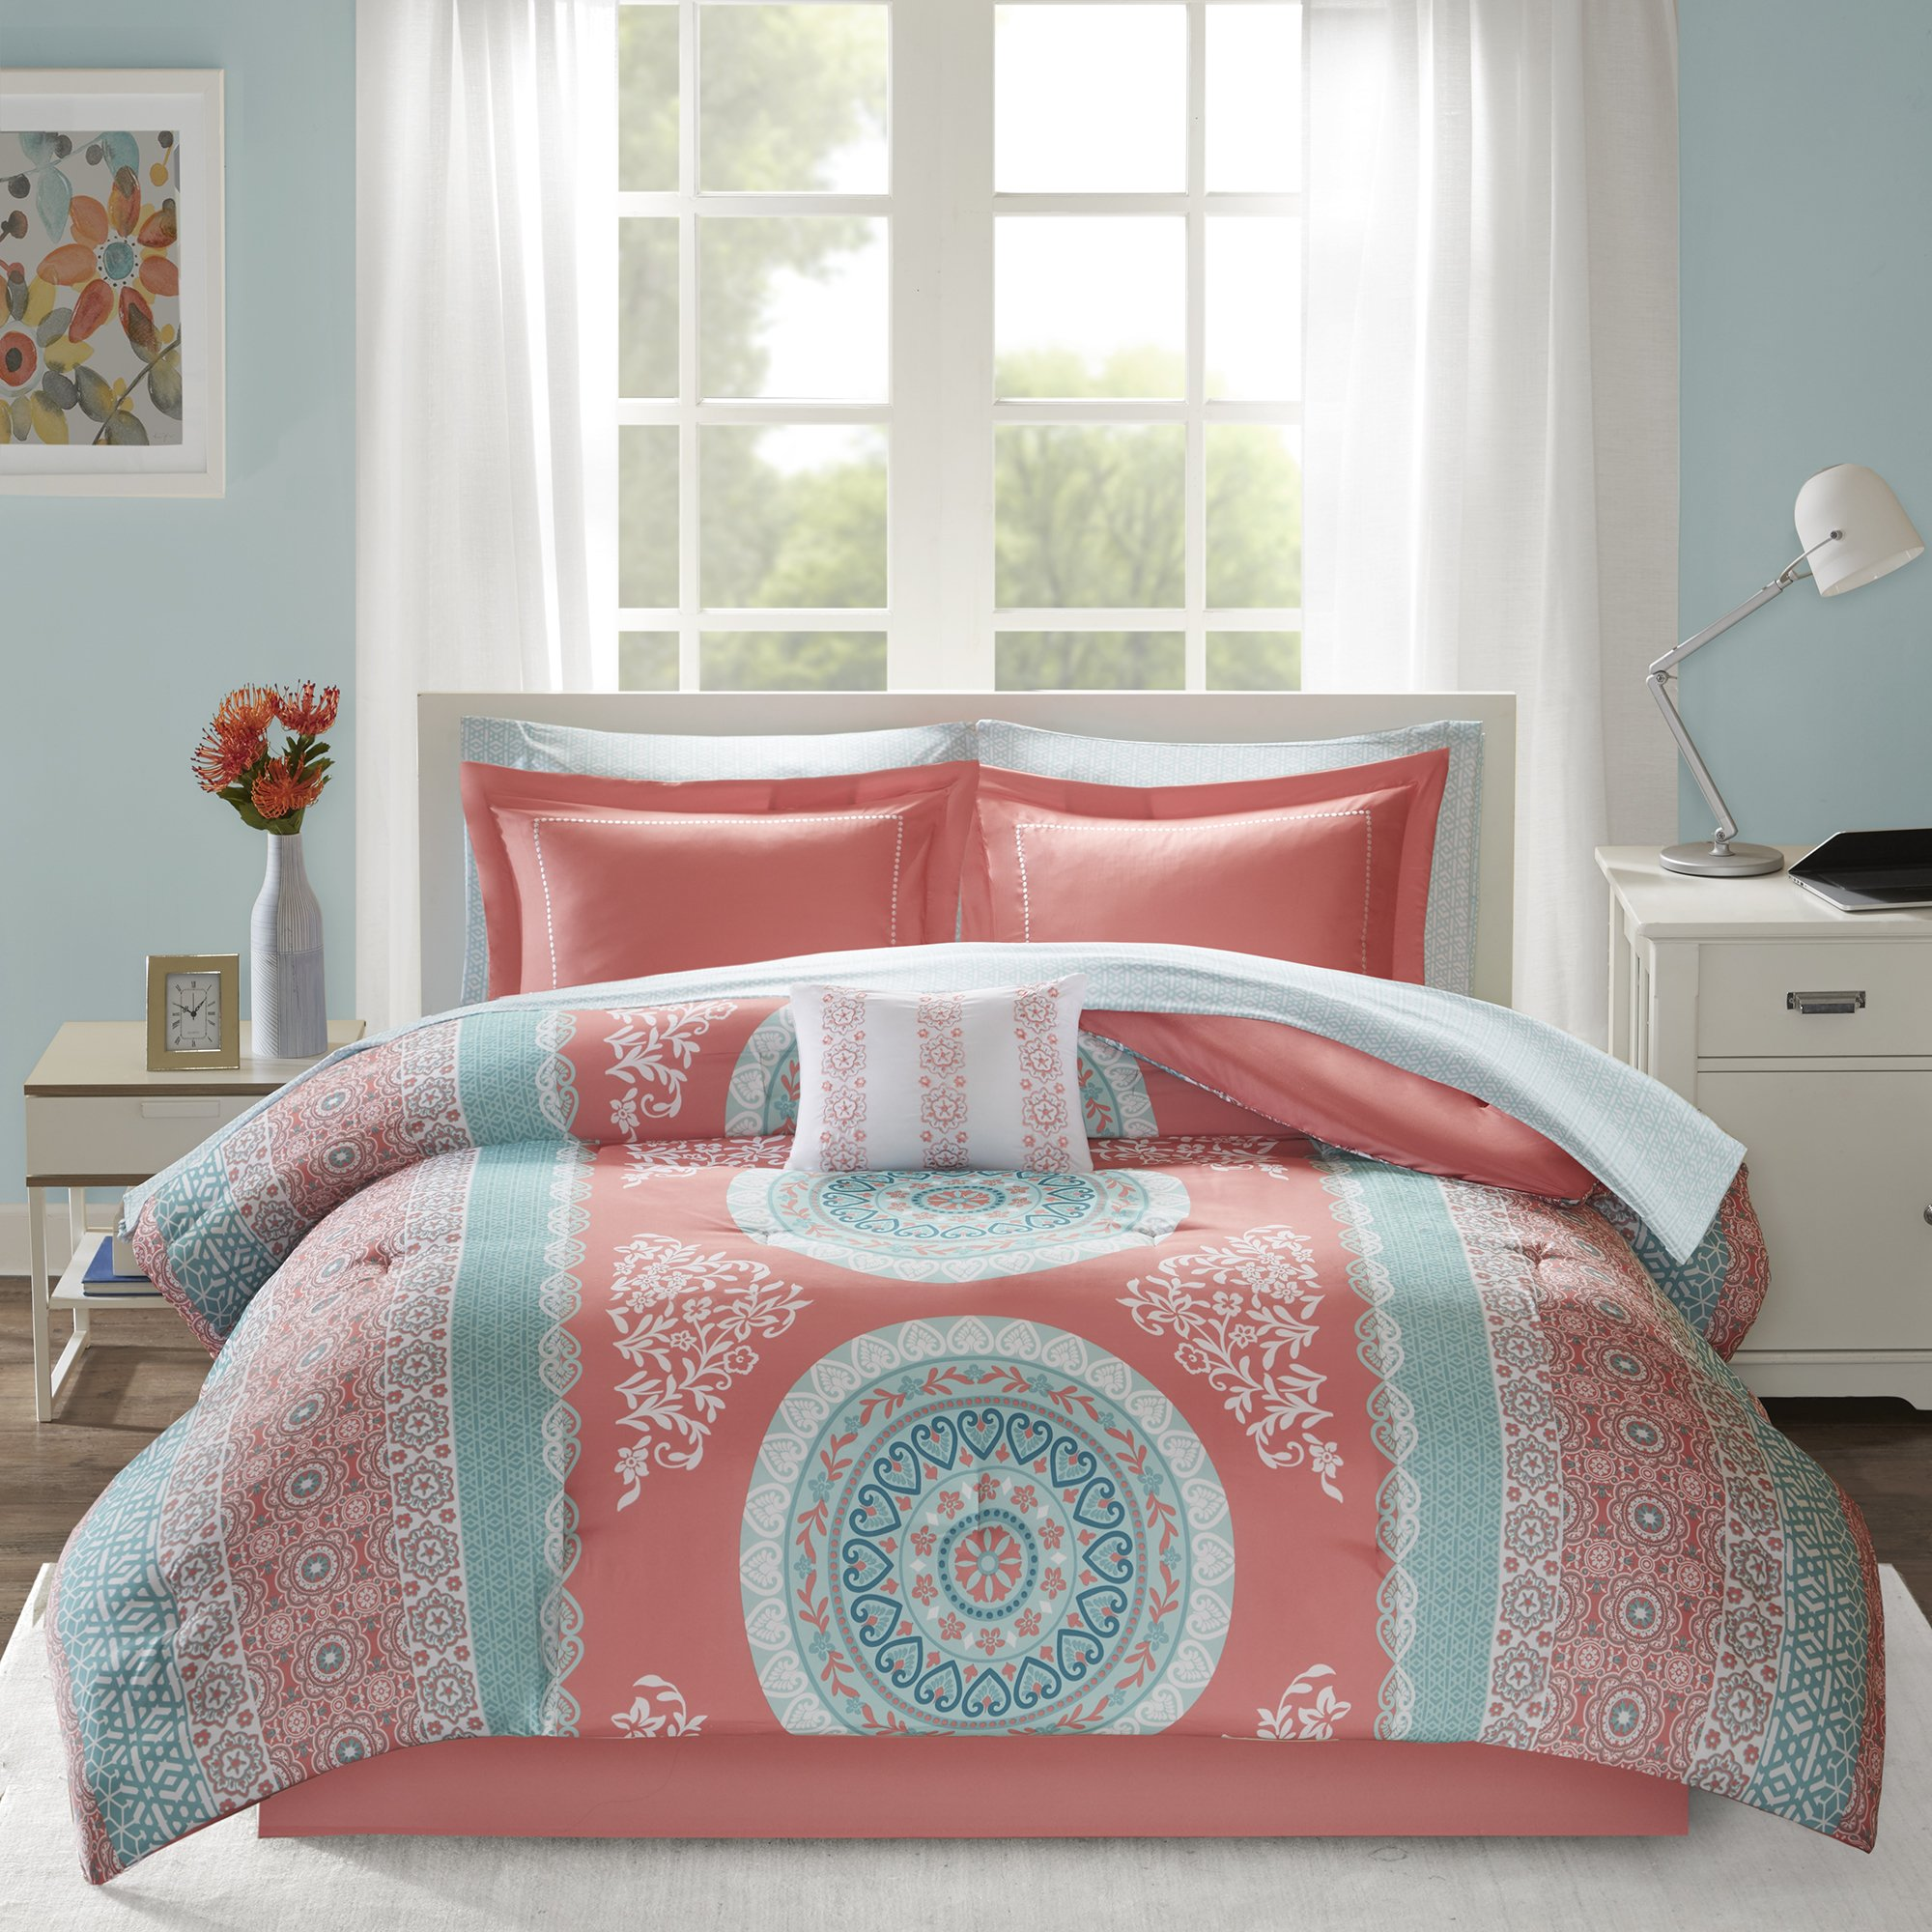 9-Piece Large Medallion Floral Stripes Pattern Comforter Bed In A Beg Set Full Size, Beautiful Bohemian Themed Design, Shabby Chic French Country Style, Vivid Vibrant Colors Blue Coral Pink, Polyester